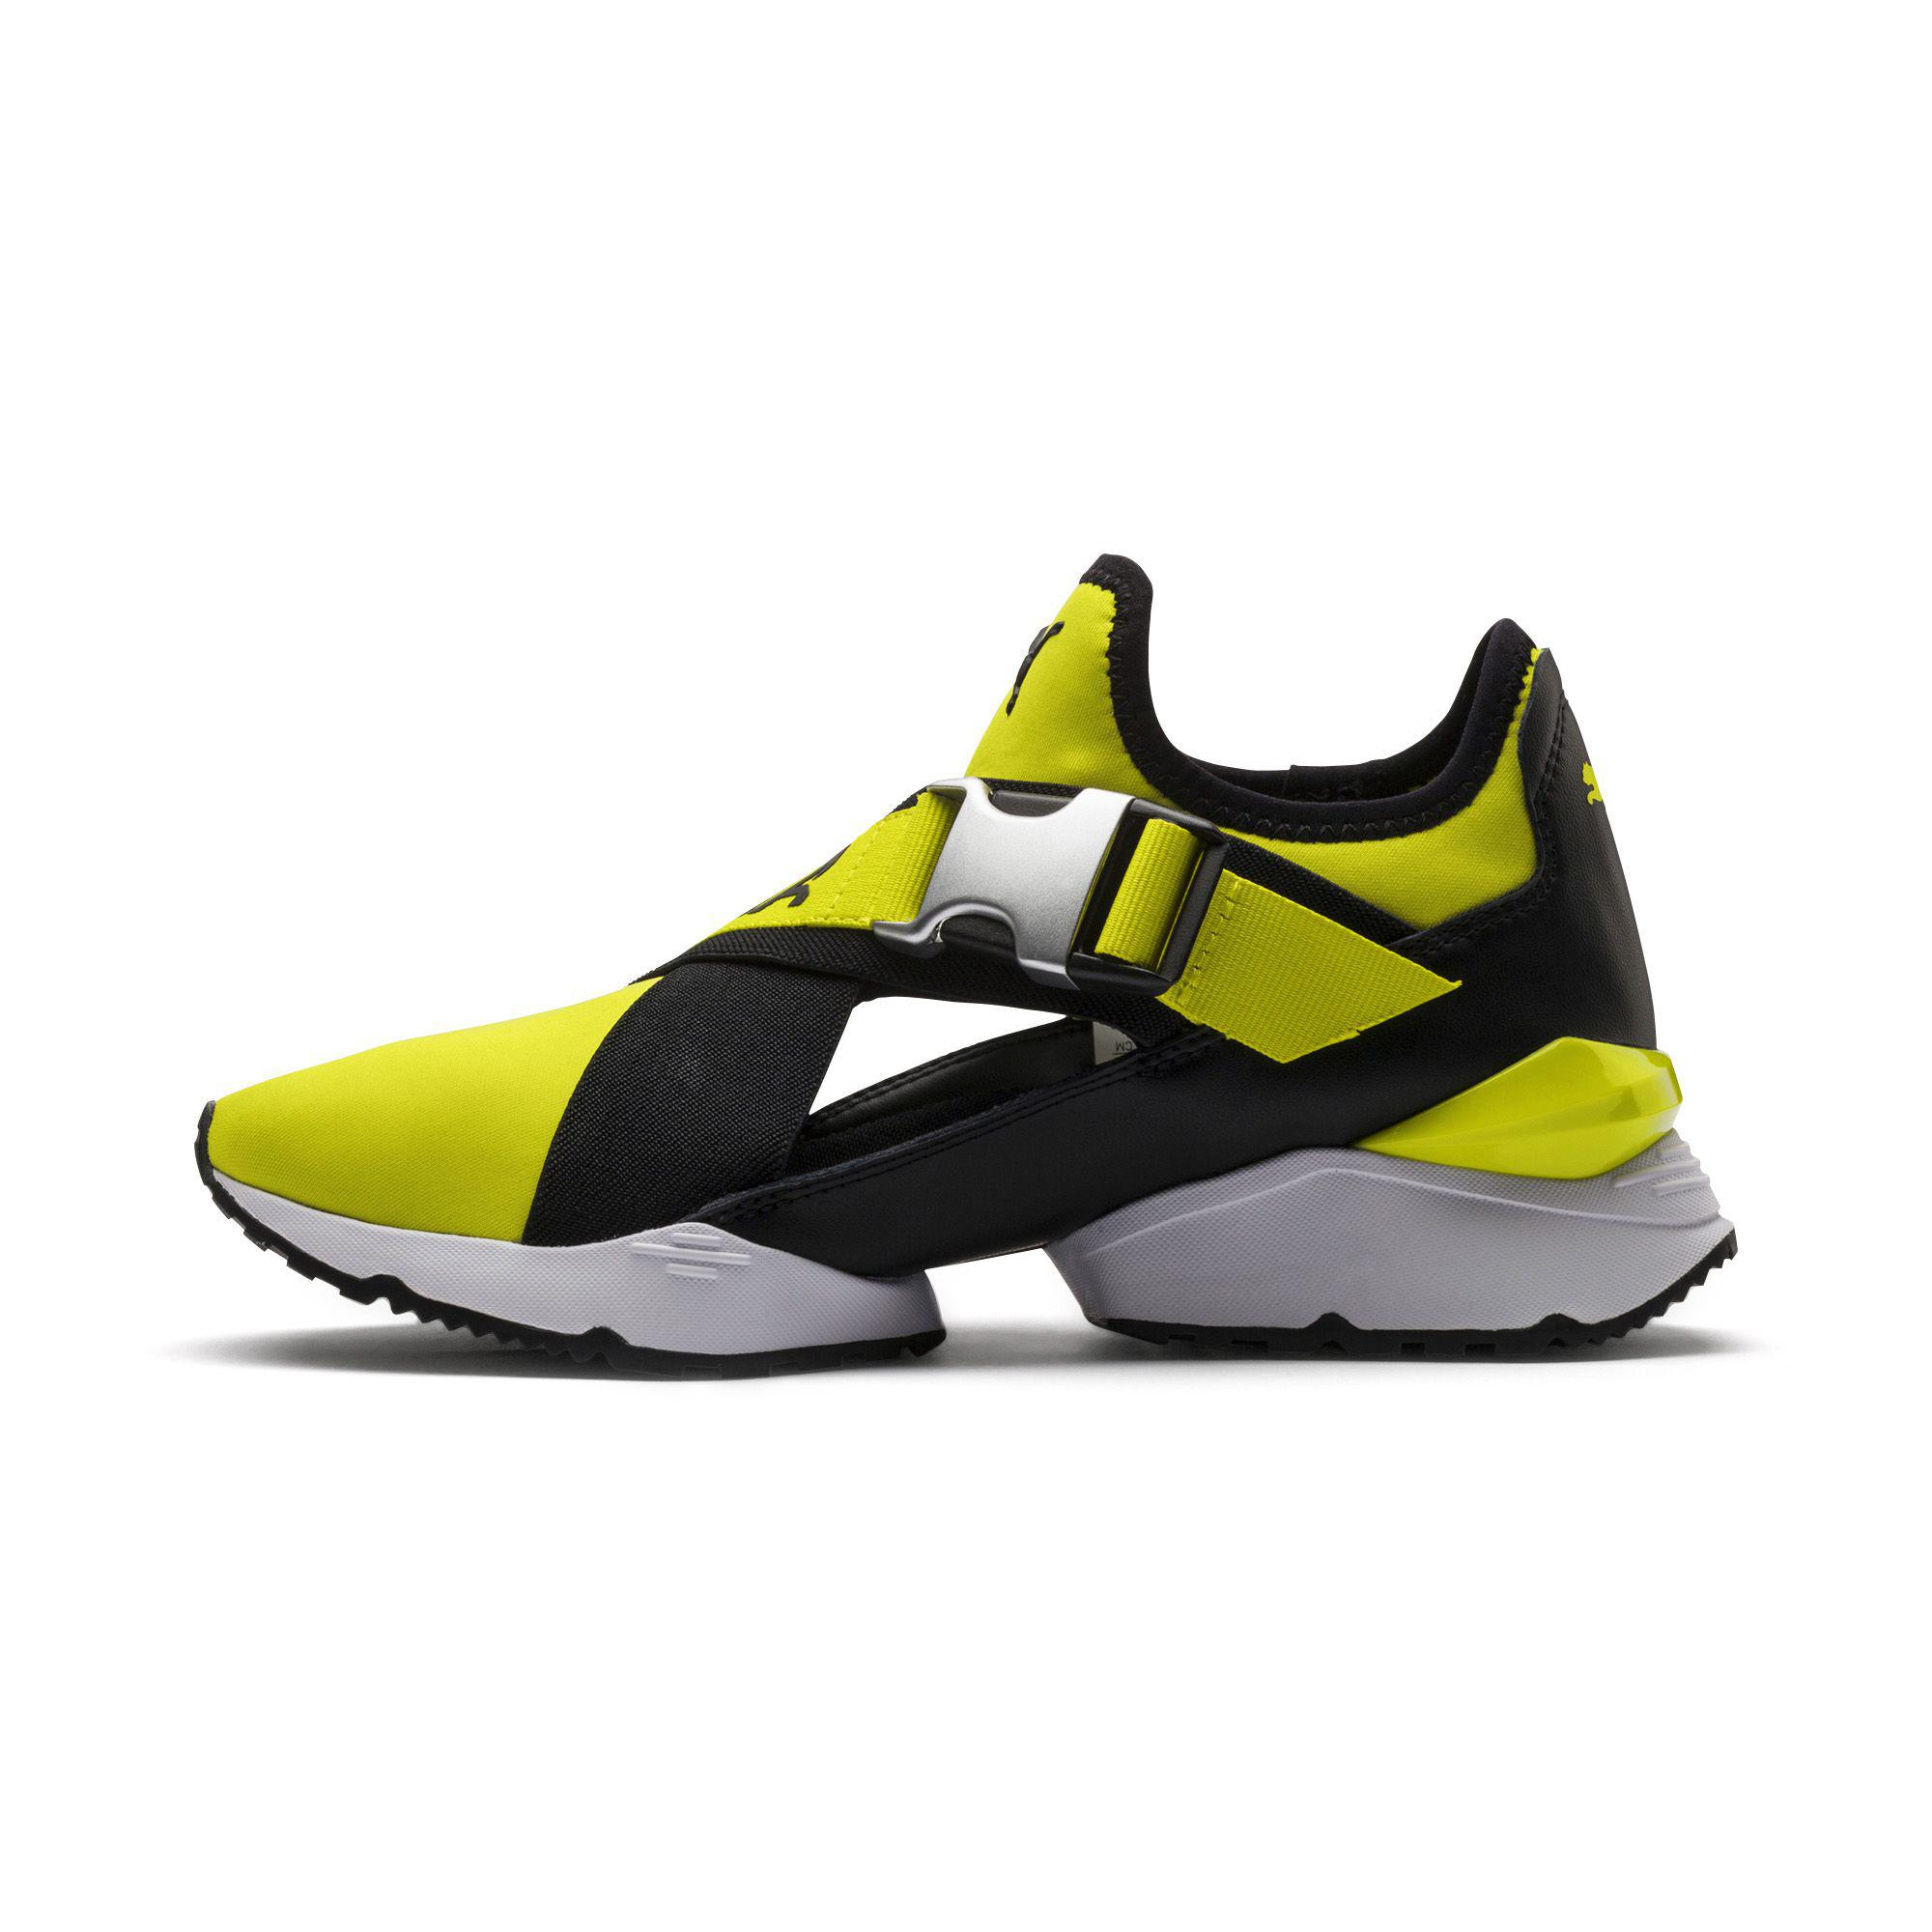 034694029b84 Lyst - PUMA Muse Cut-out Women s Sneakers